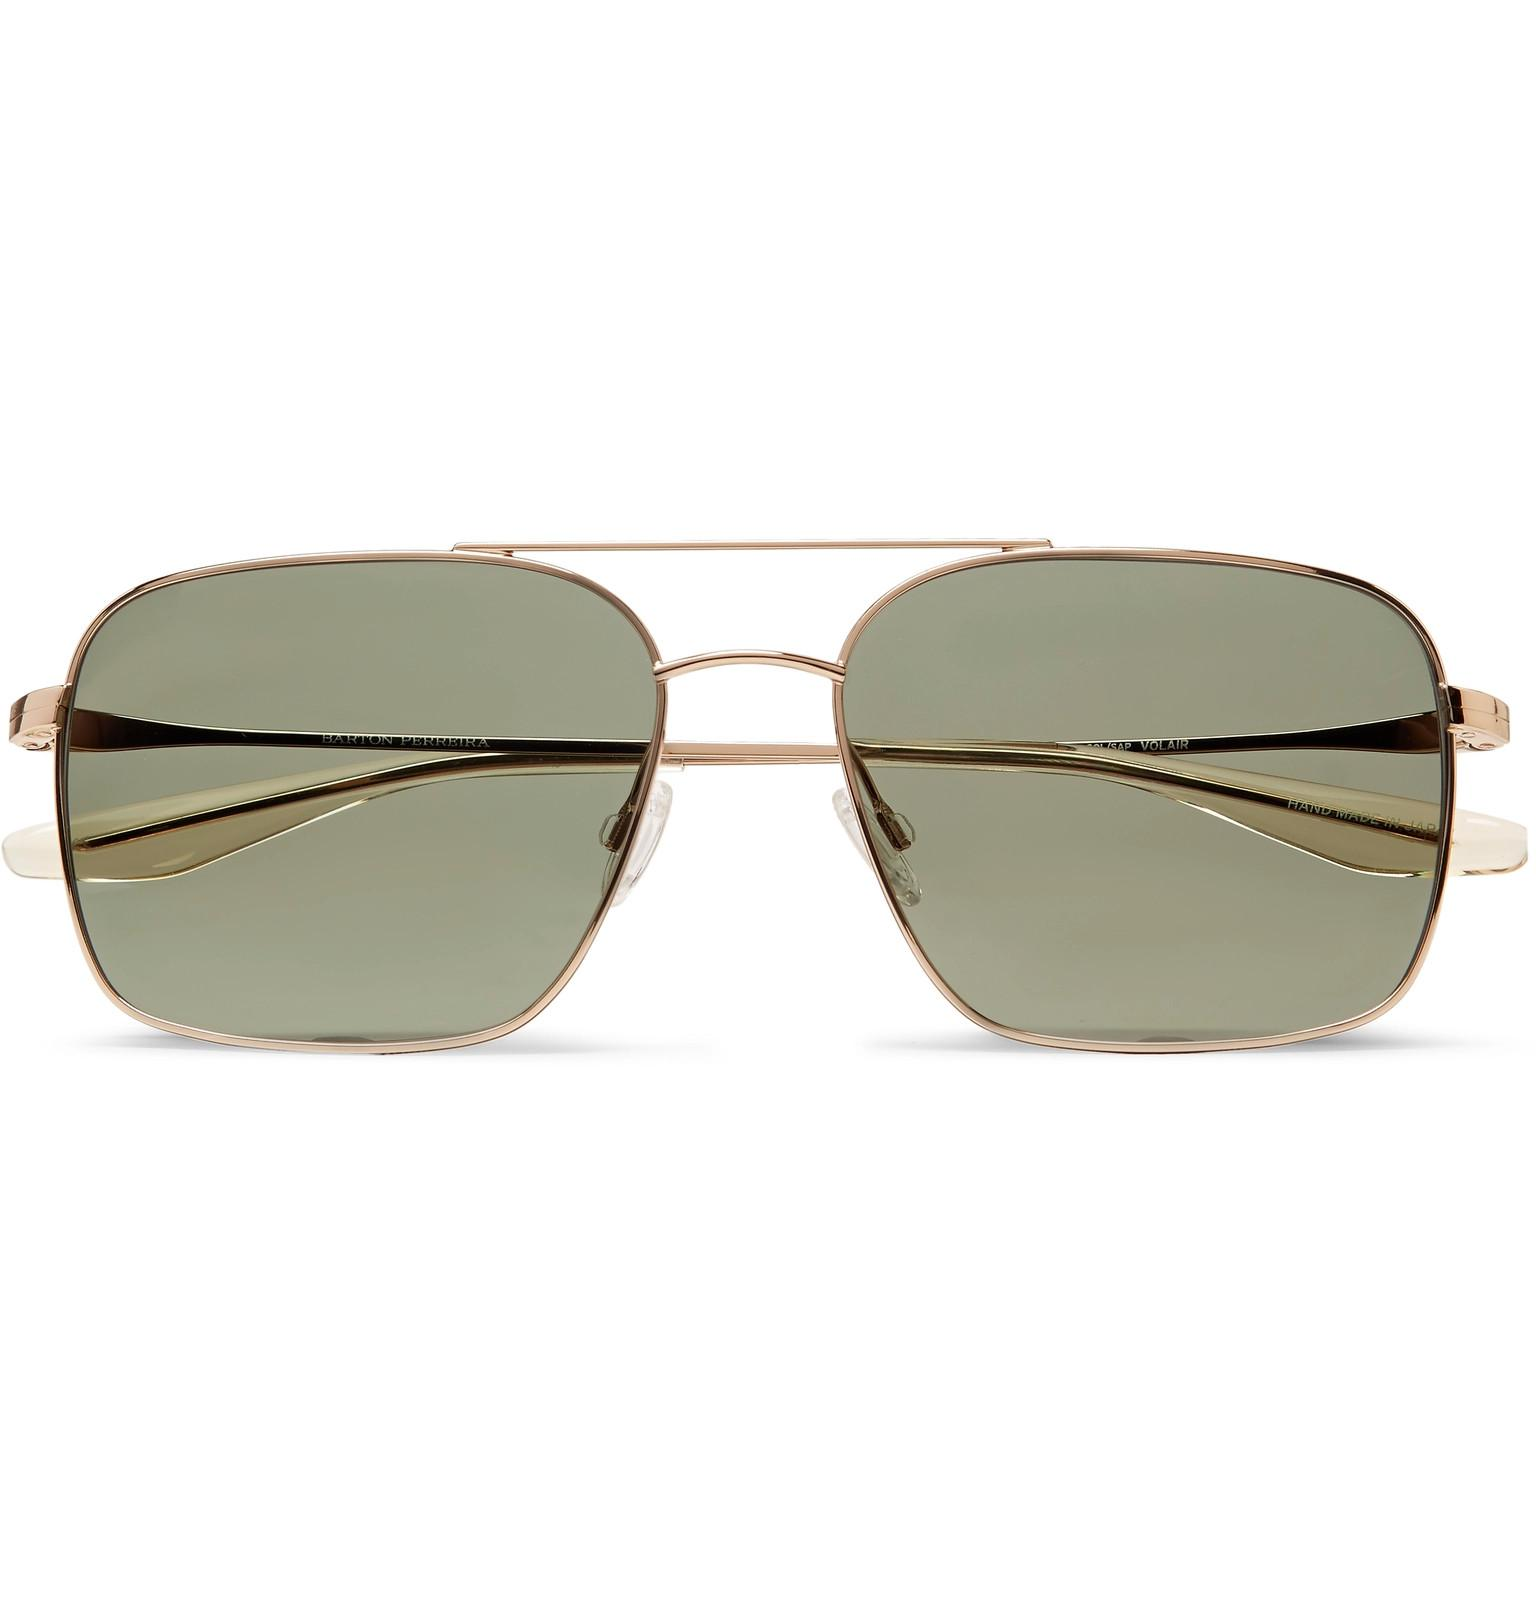 a9dbc75d7d Lyst - Barton Perreira Volair Aviator-style Gold-tone Sunglasses in ...